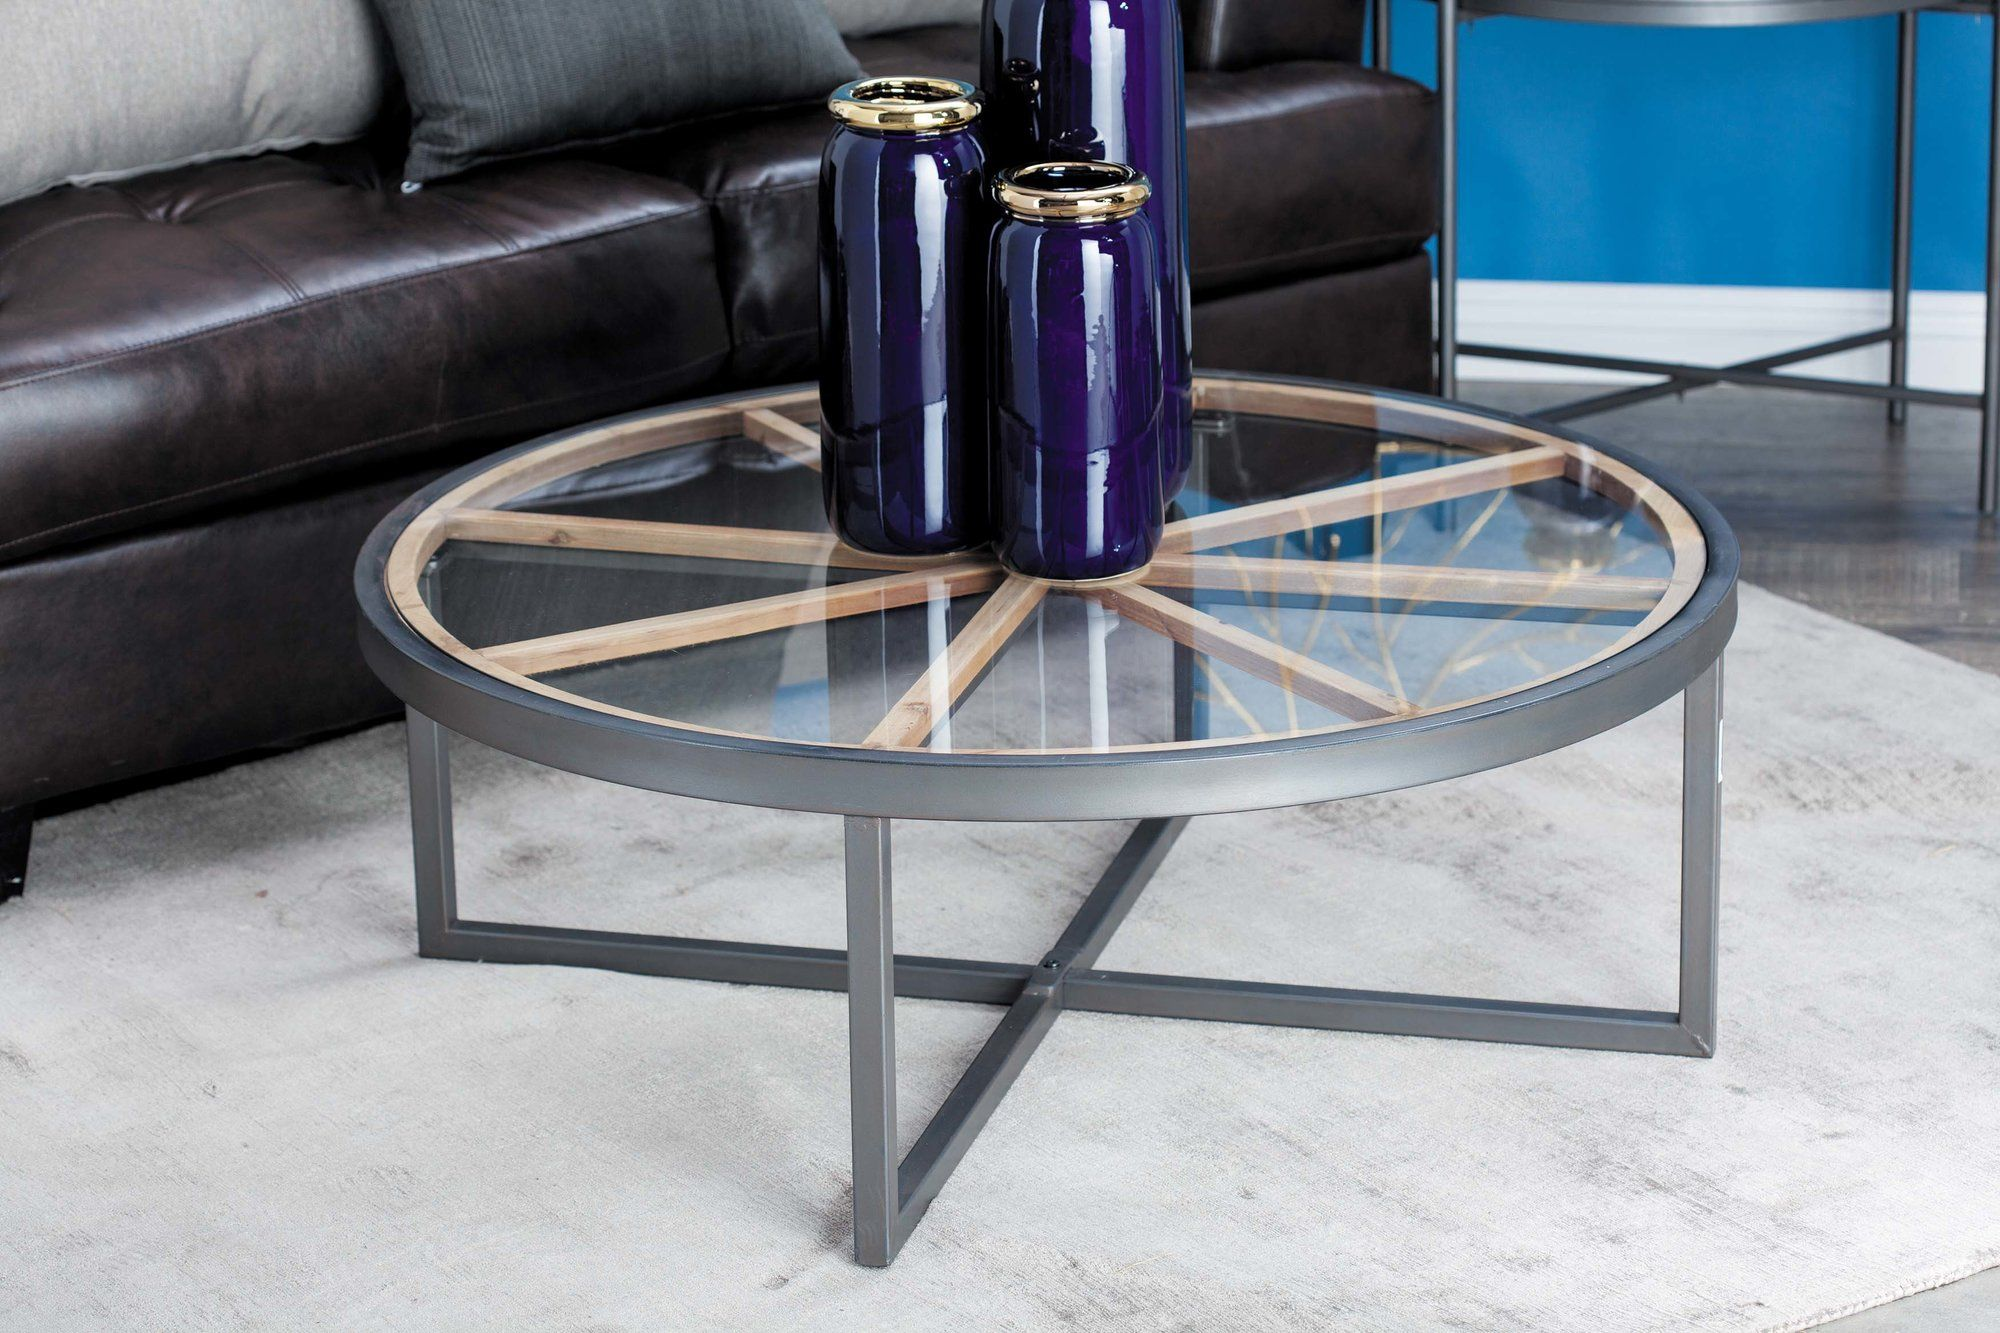 Robin Coffee Table Round Glass Coffee Table Coffee Table Coffee Table Design Modern [ 1333 x 2000 Pixel ]